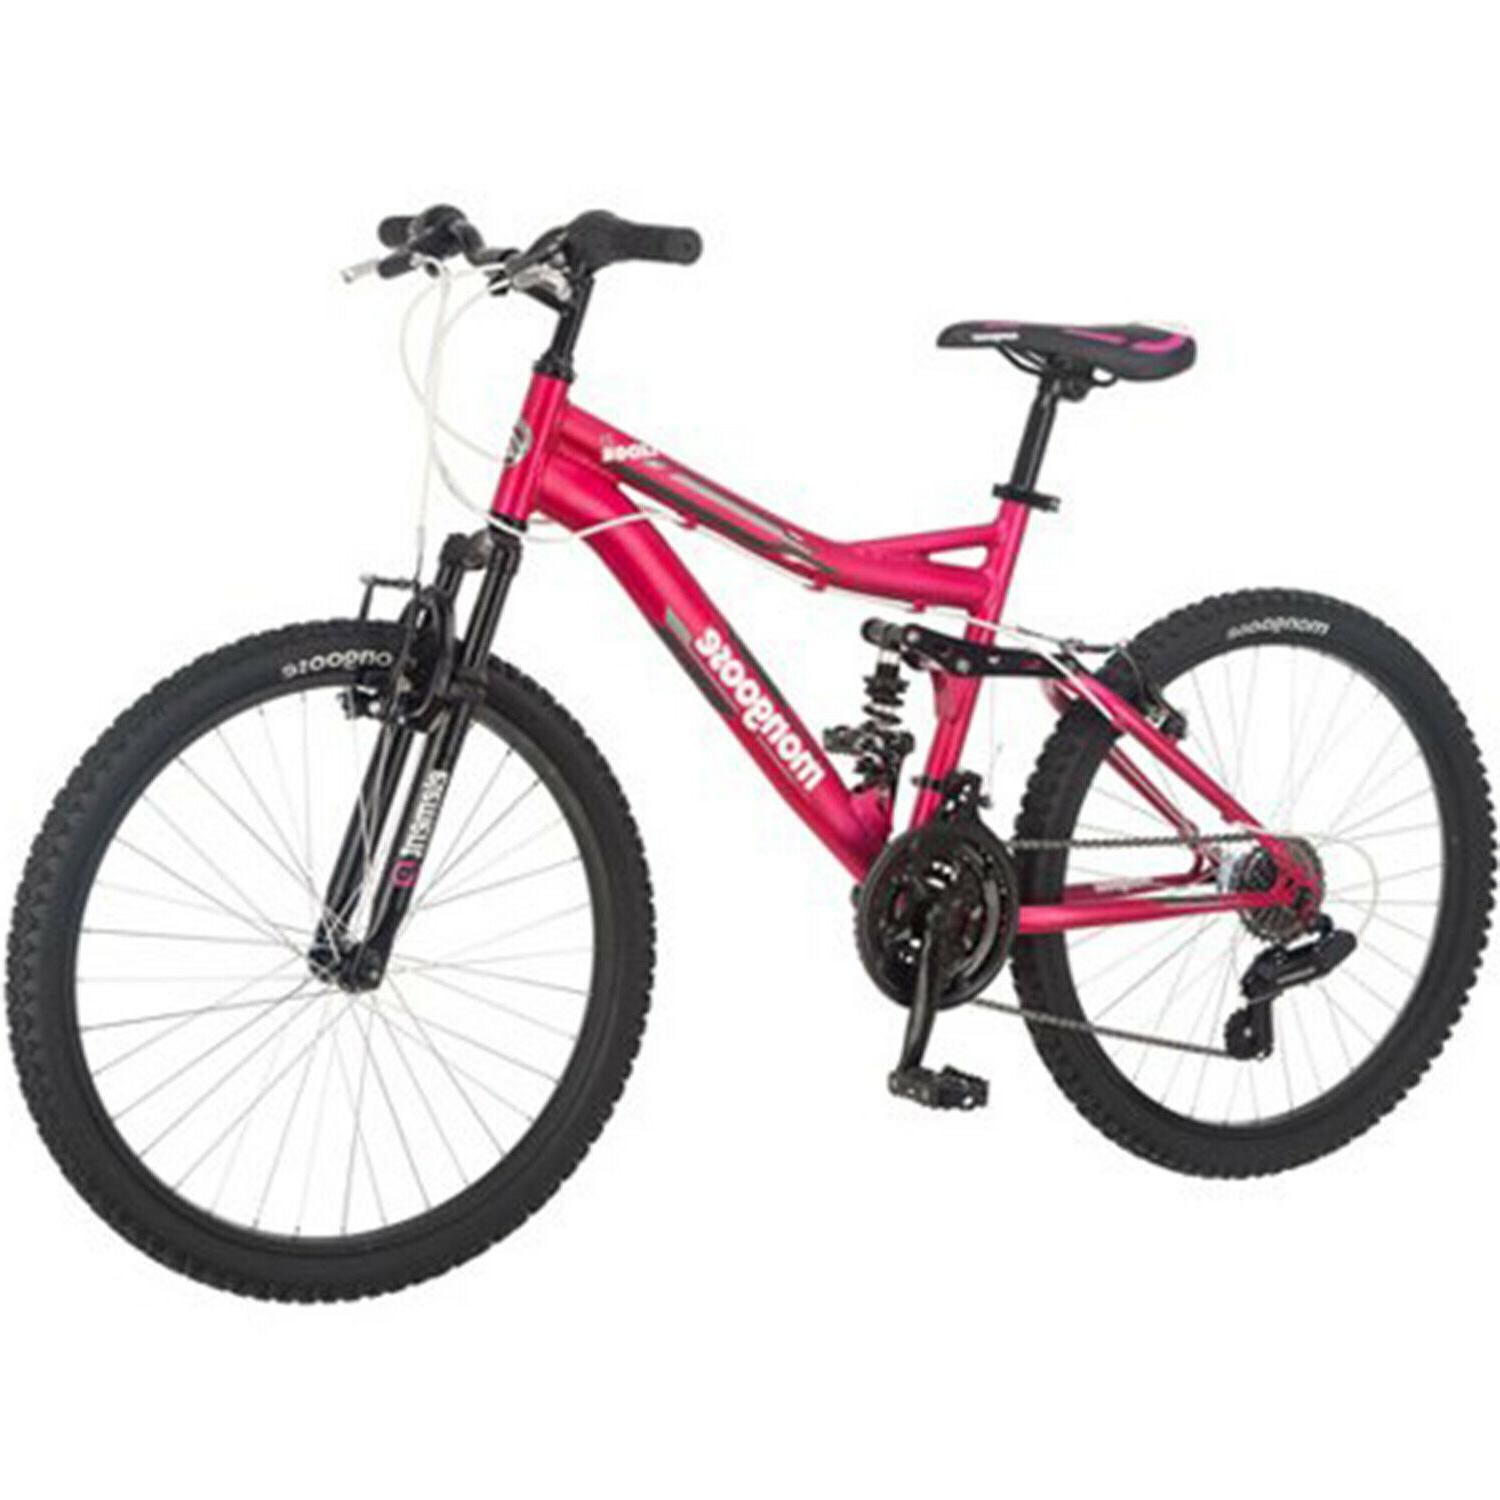 "24"" Inch Bike Aluminum Suspension Frame"